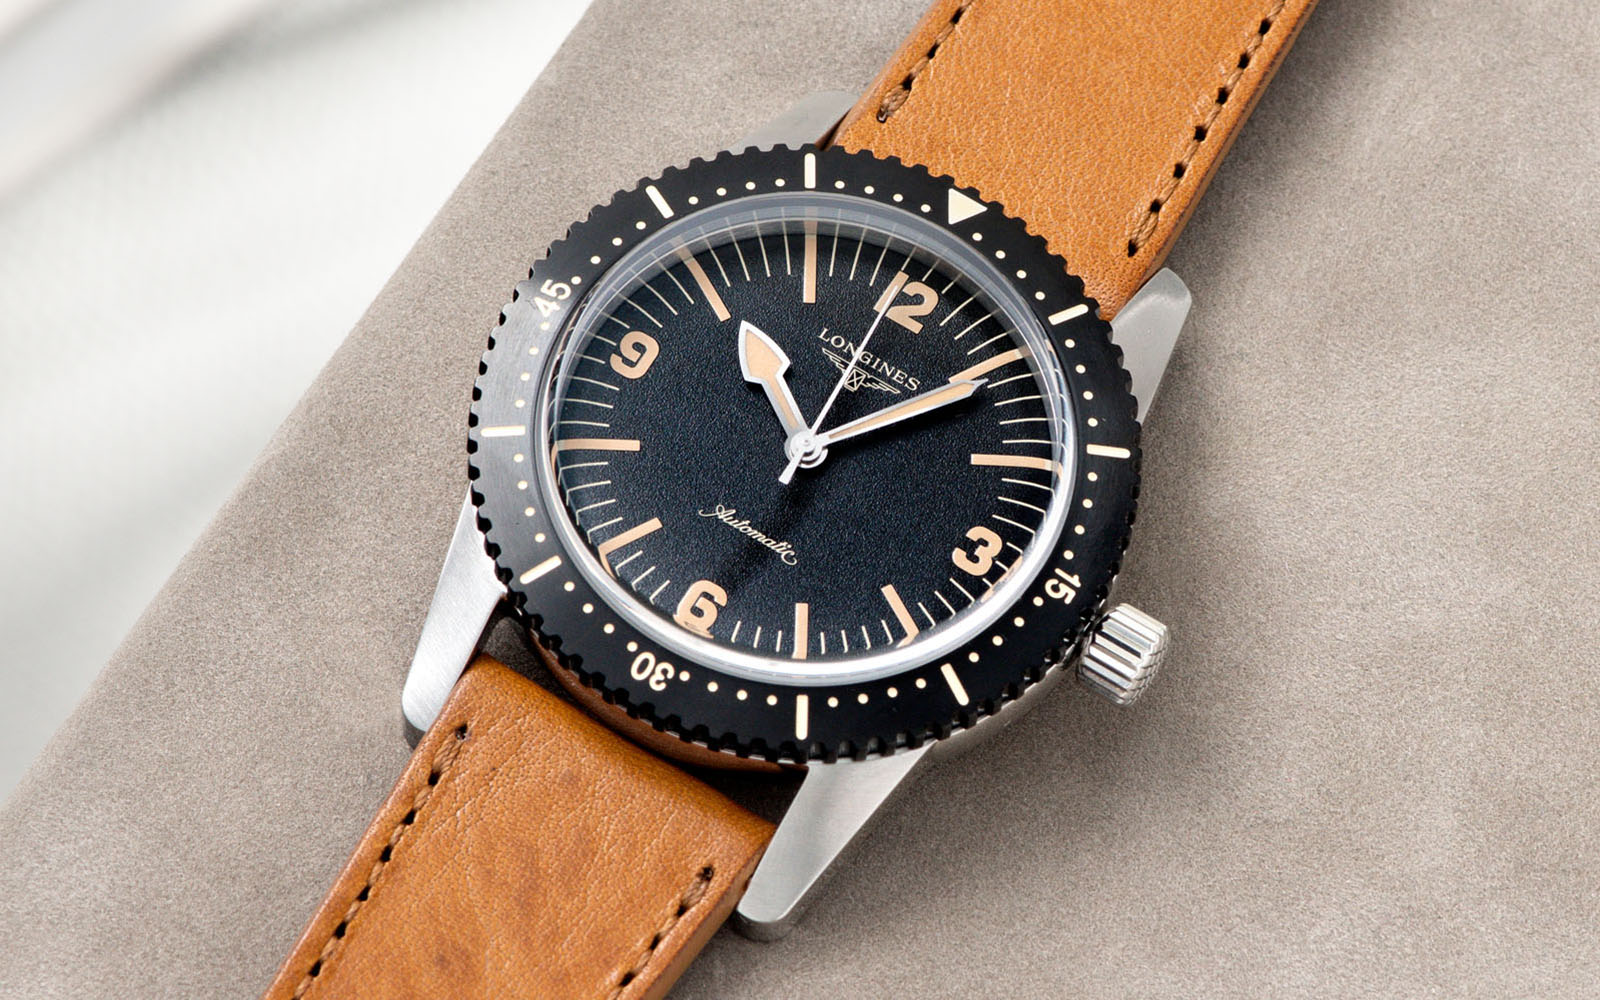 Bulang and Sons_Strap Guide_Longines Skin Diver_Gilt Brown tonal Leather Watch Strap_Banner